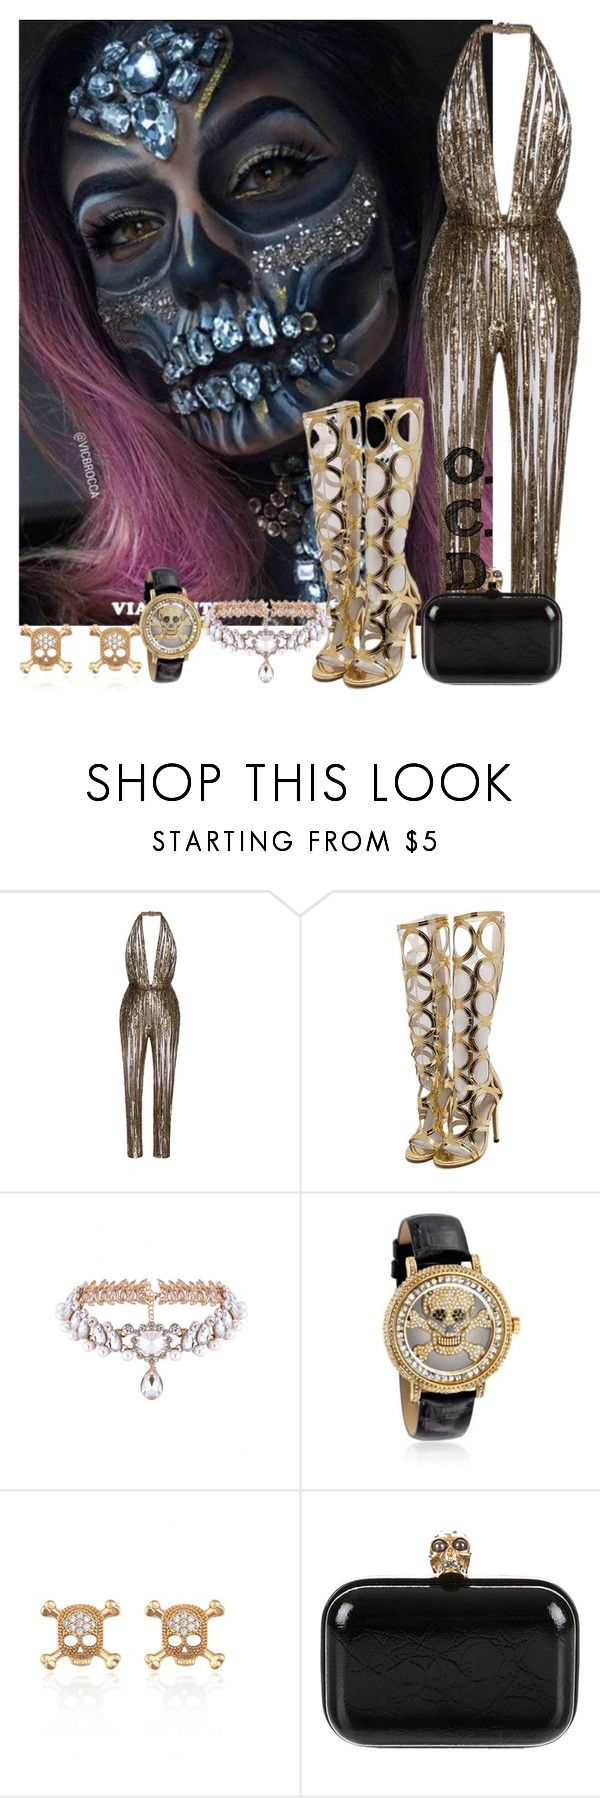 """""""Halloween Edition: Glamour Skull."""" by oreocaker ❤ liked on Polyvore featuring Elie Saab, WithChic, Saint James and Alexander McQueen"""